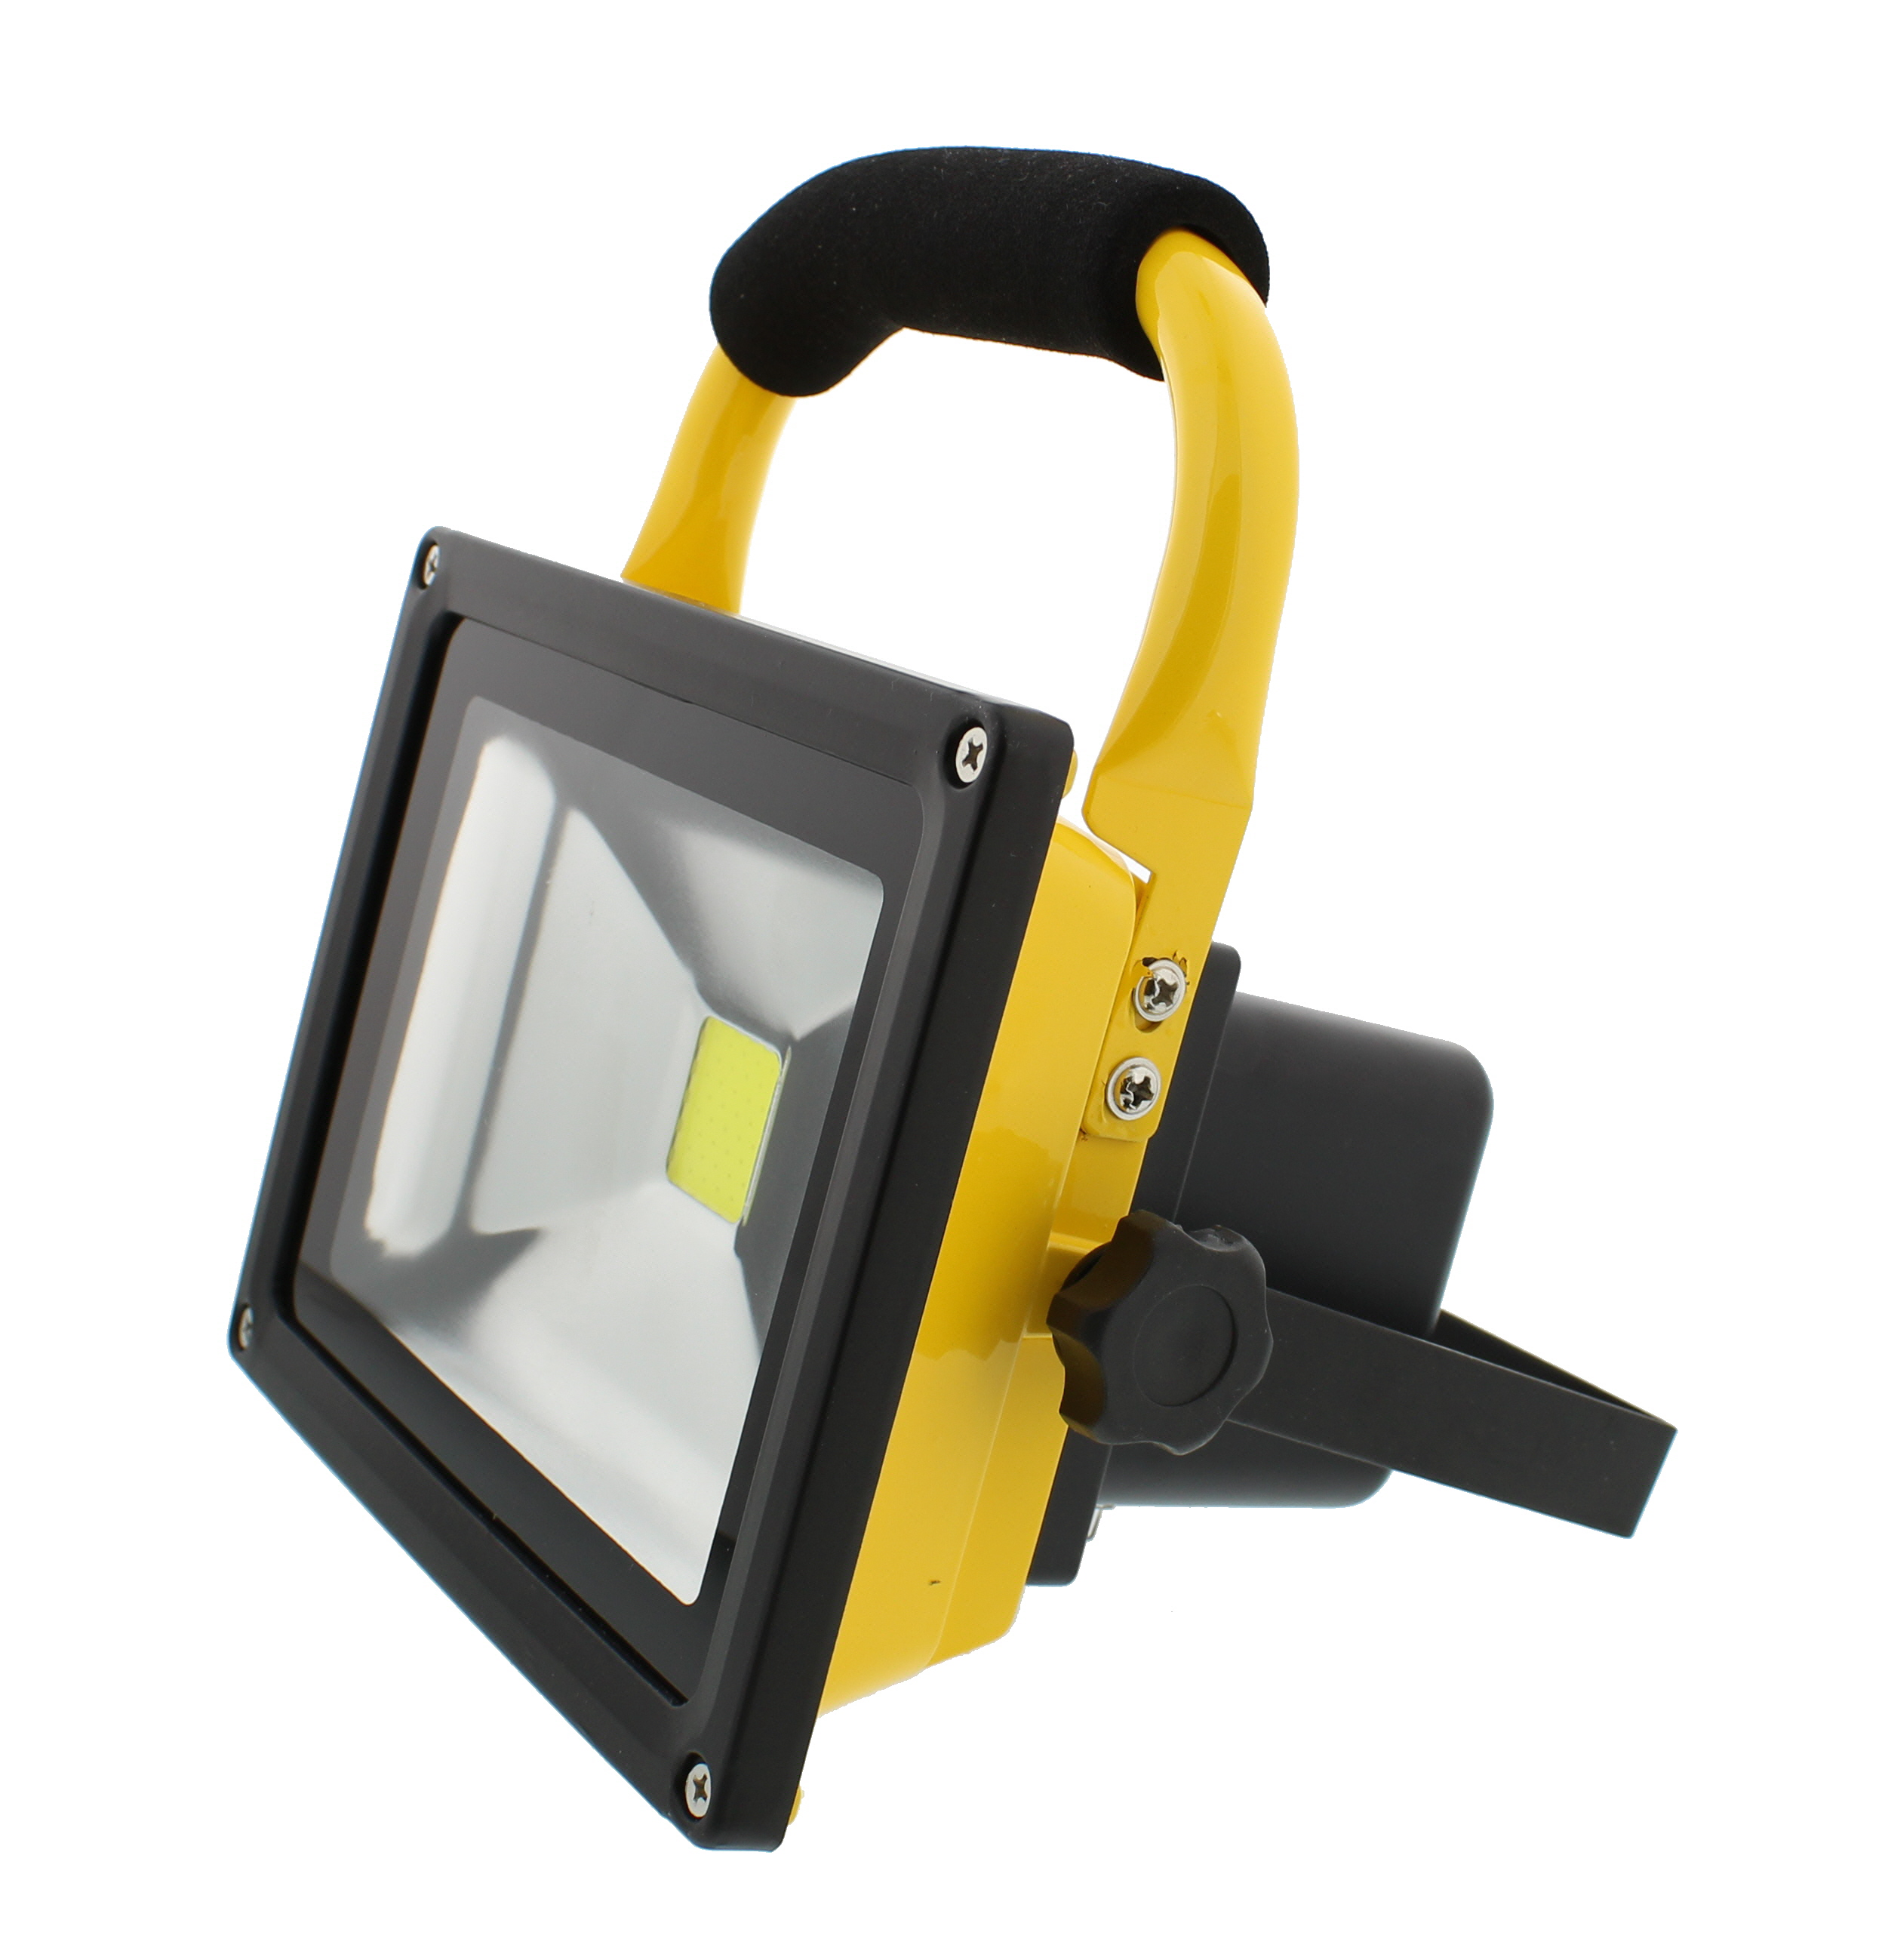 Led Flood Light Rechargeable 20w